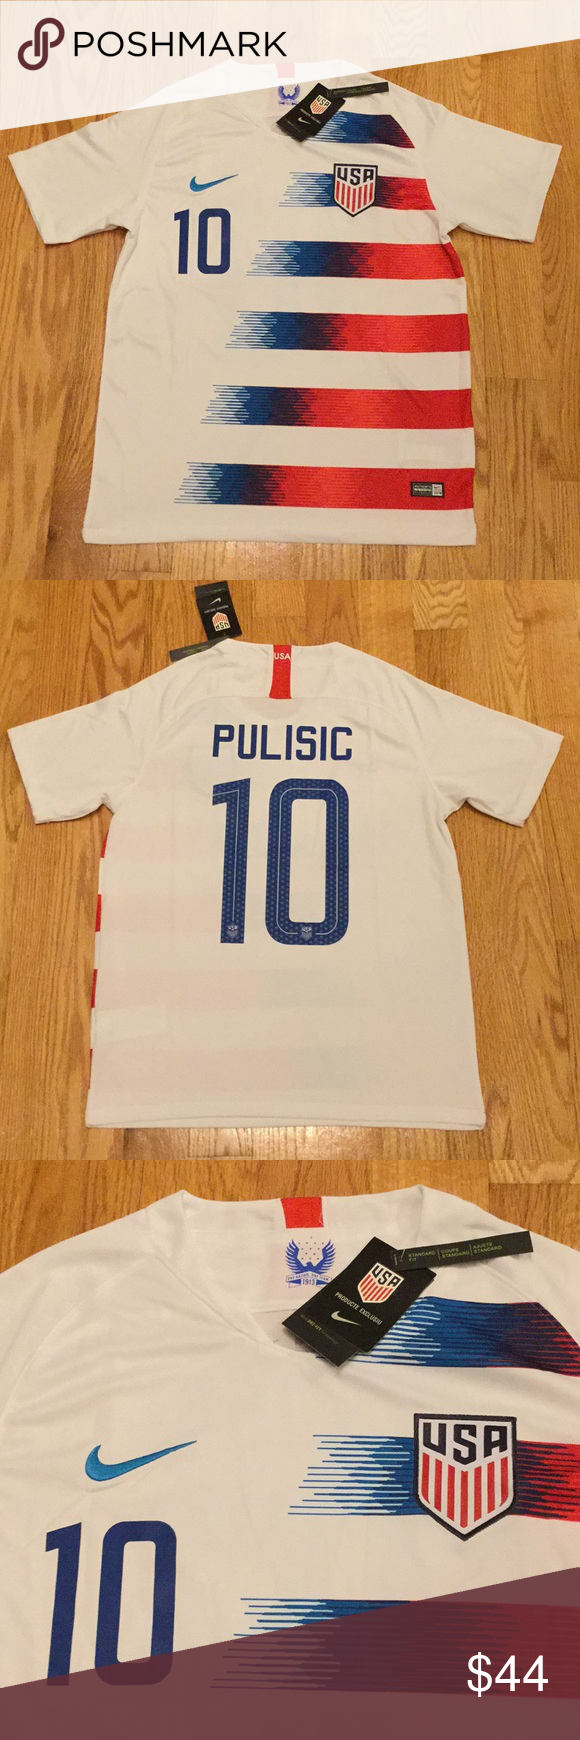 5dc3927ce 2018 USA Pulisic Soccer Jersey New with tags! Men s adult sizes ...